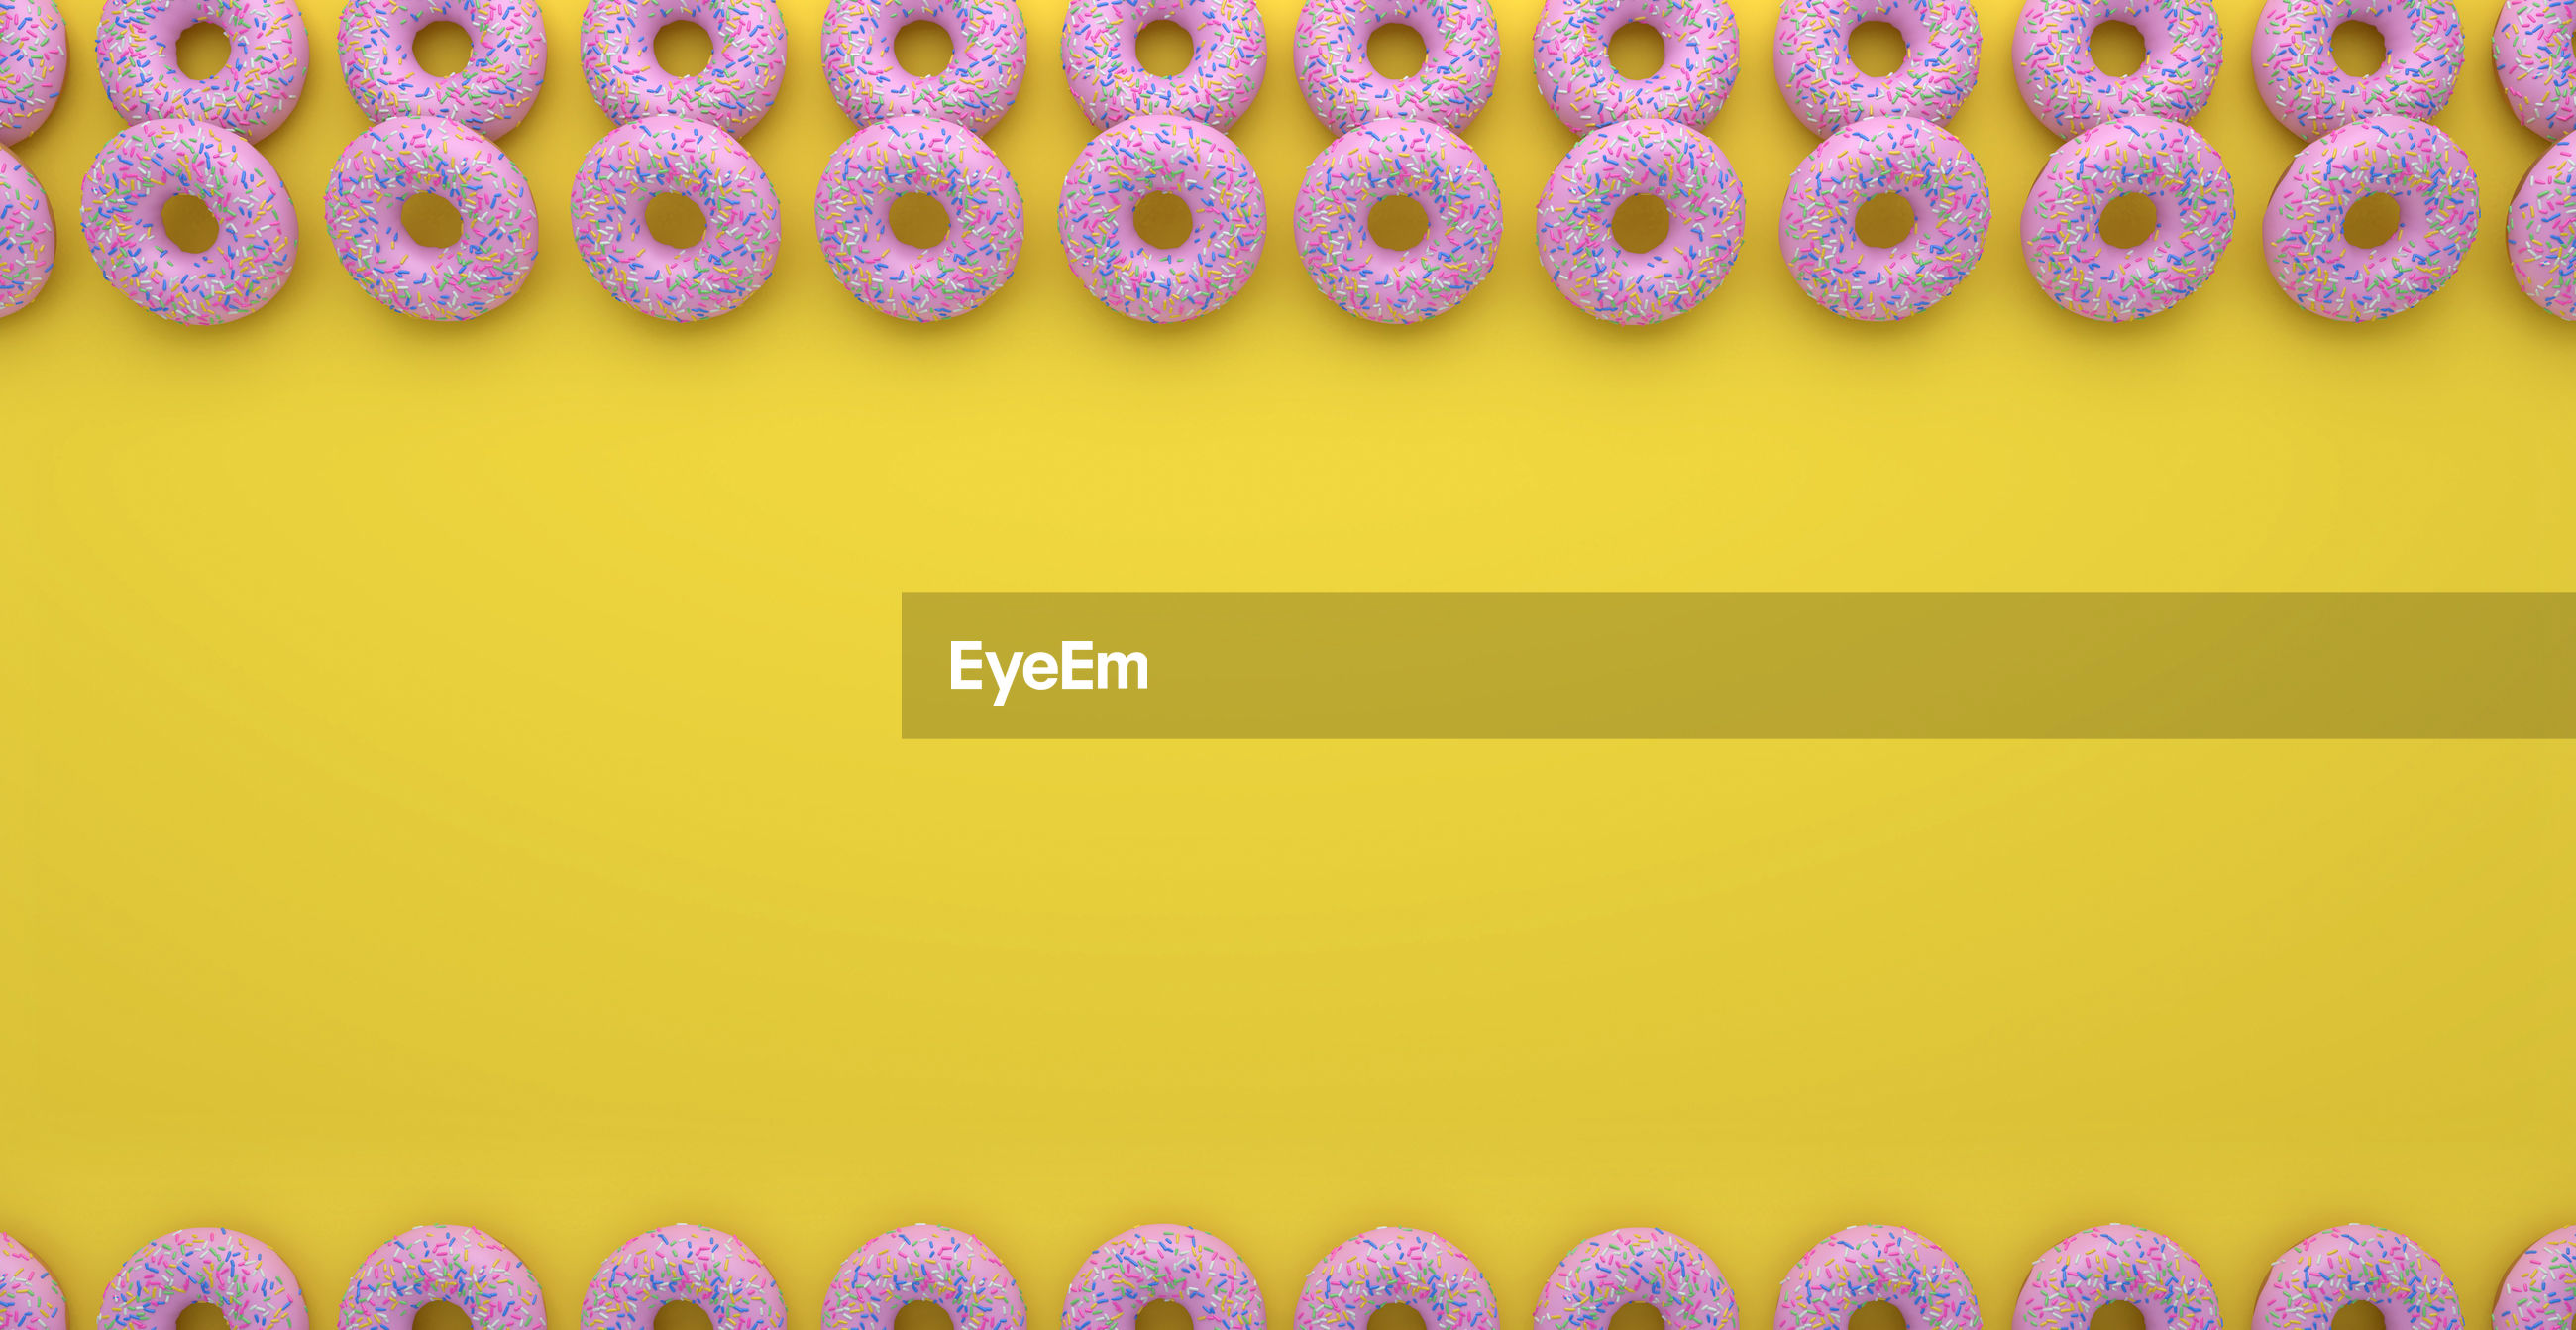 Pink donuts on yellow background